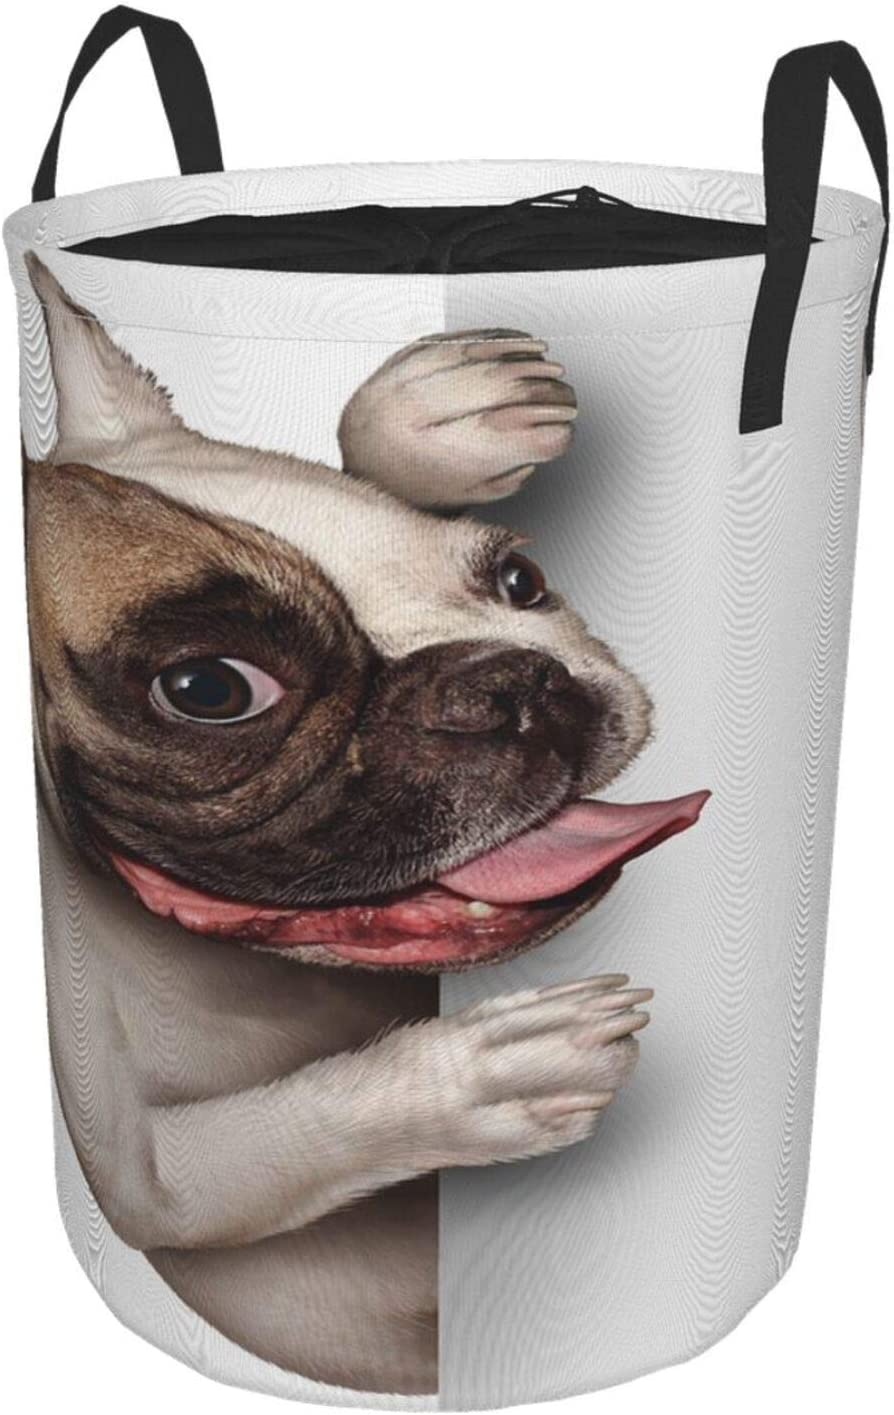 "Janrely Large Storage Baskets,A French Bulldog with A Smiling Happy Expression,Drawstring Waterproof Round Collapsible Laundry Hamper for Dirty Clothes Toy Home Office 21.6""X16.5"""